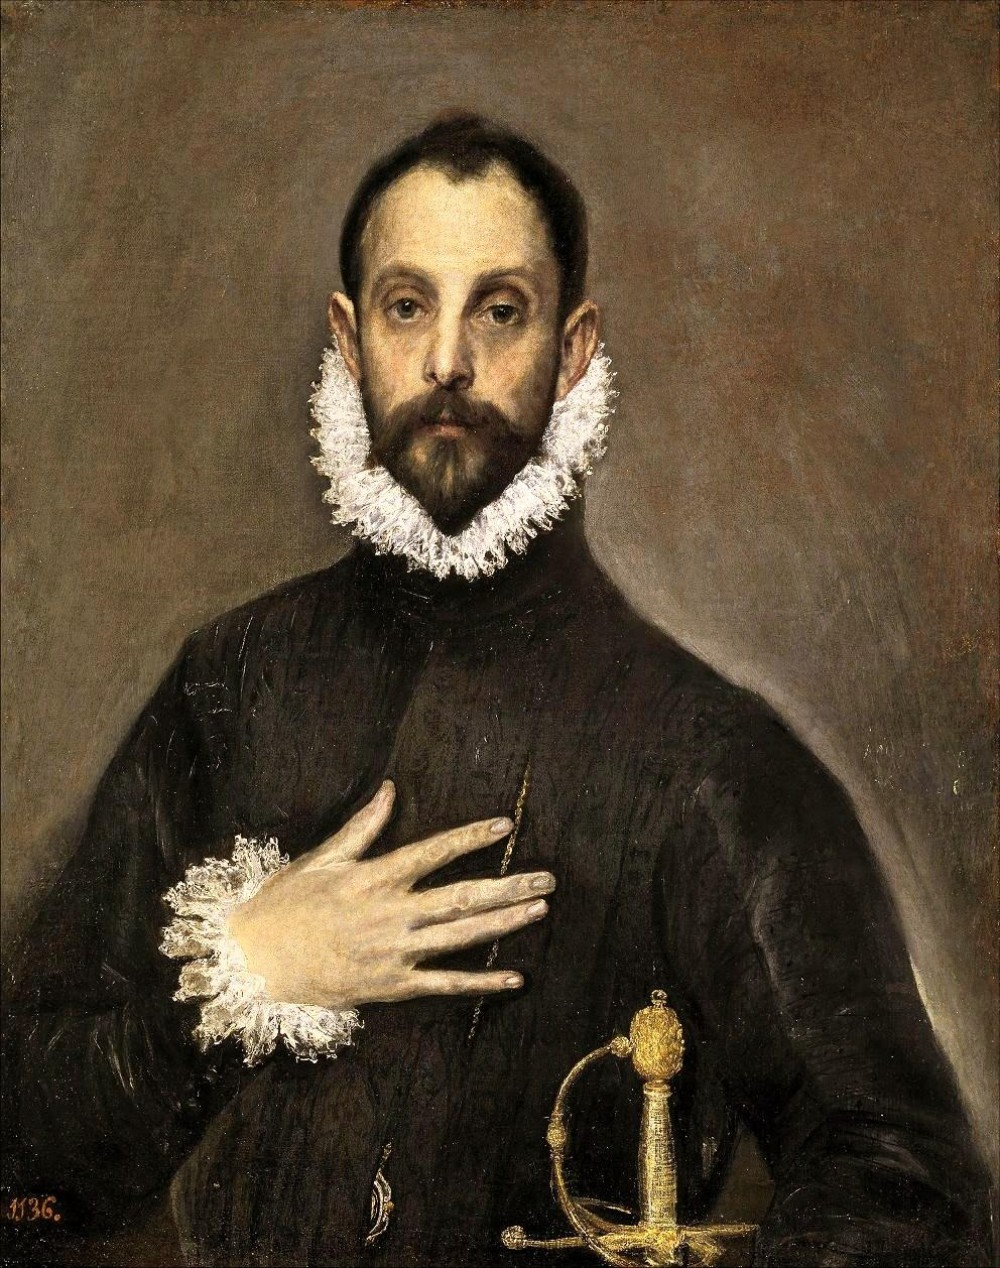 el-greco-domenikos-theotkopoulos-a-knight-with-his-hand-on-his-chest-1580